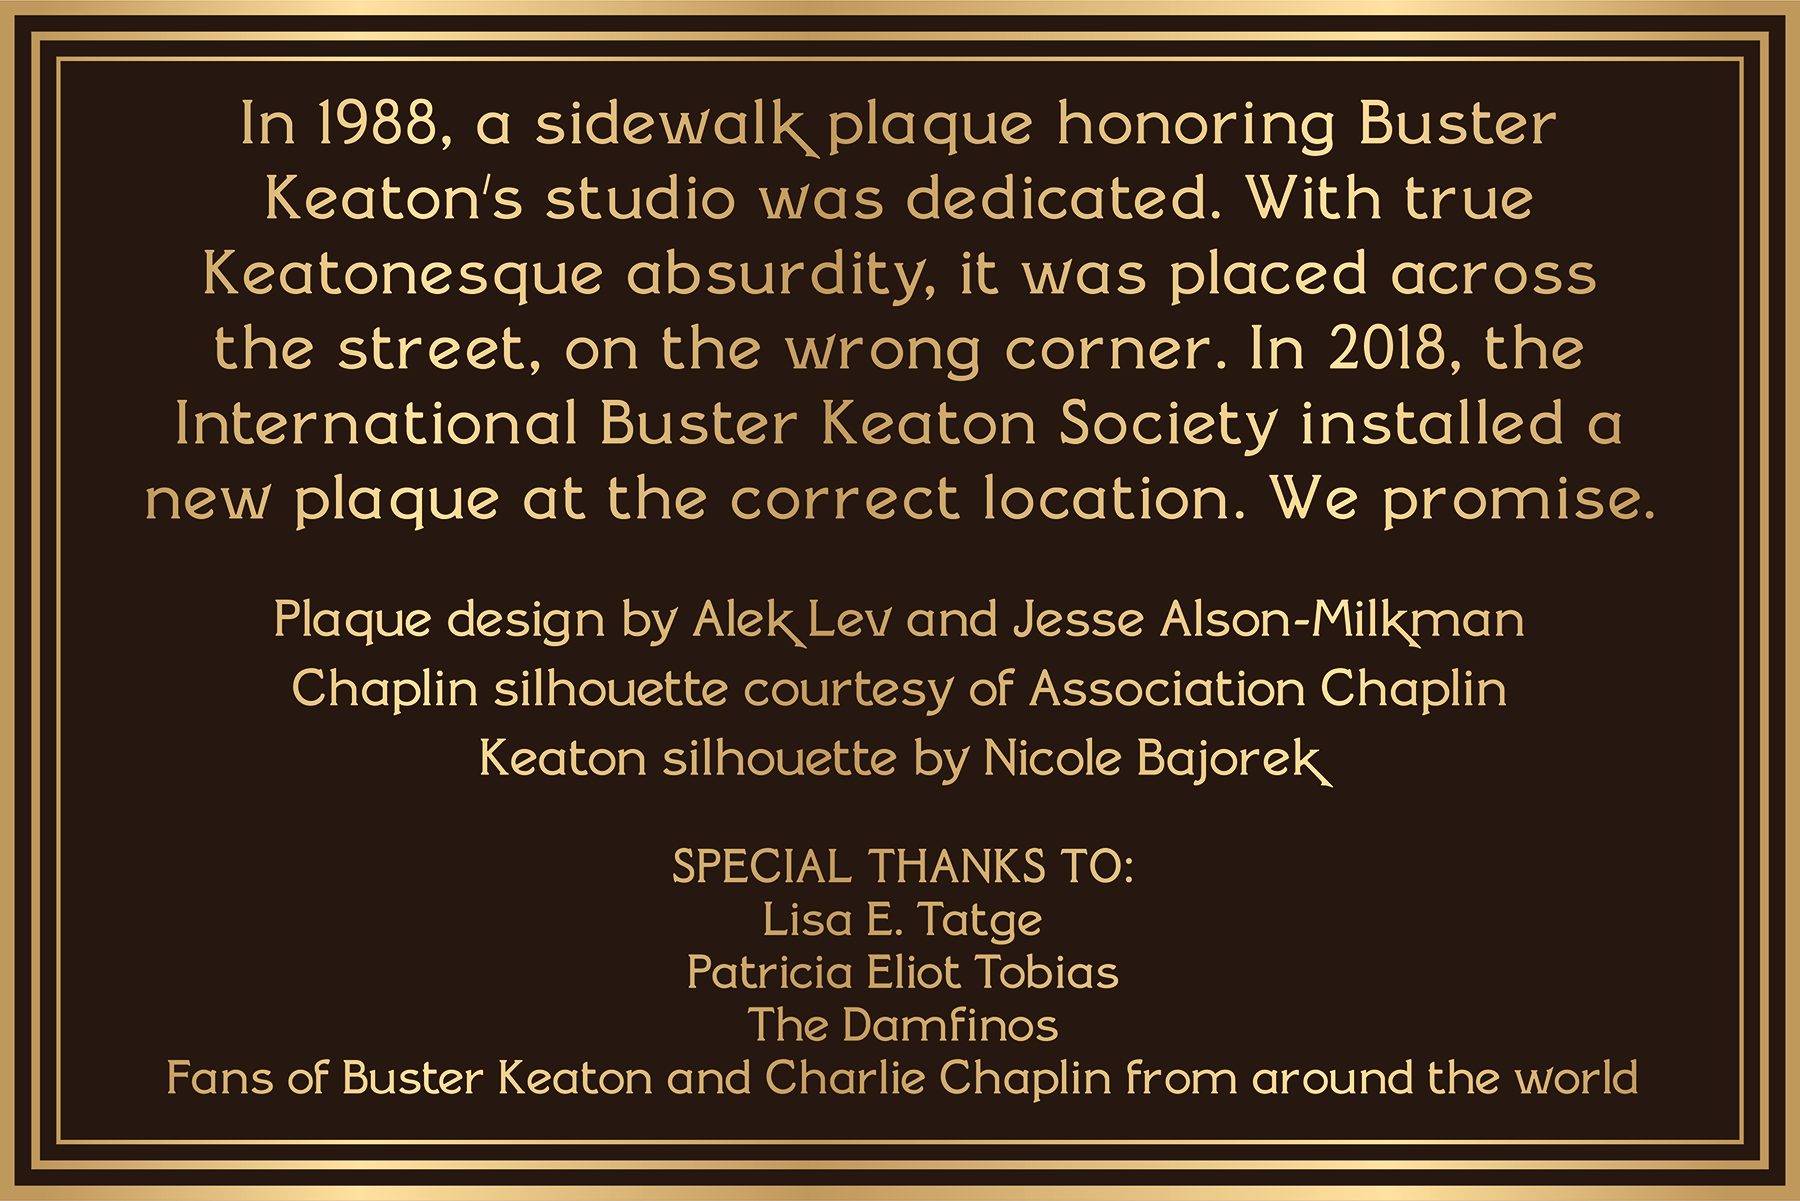 SMALL PLAQUE-color CREDIT The International Buster Keaton Society